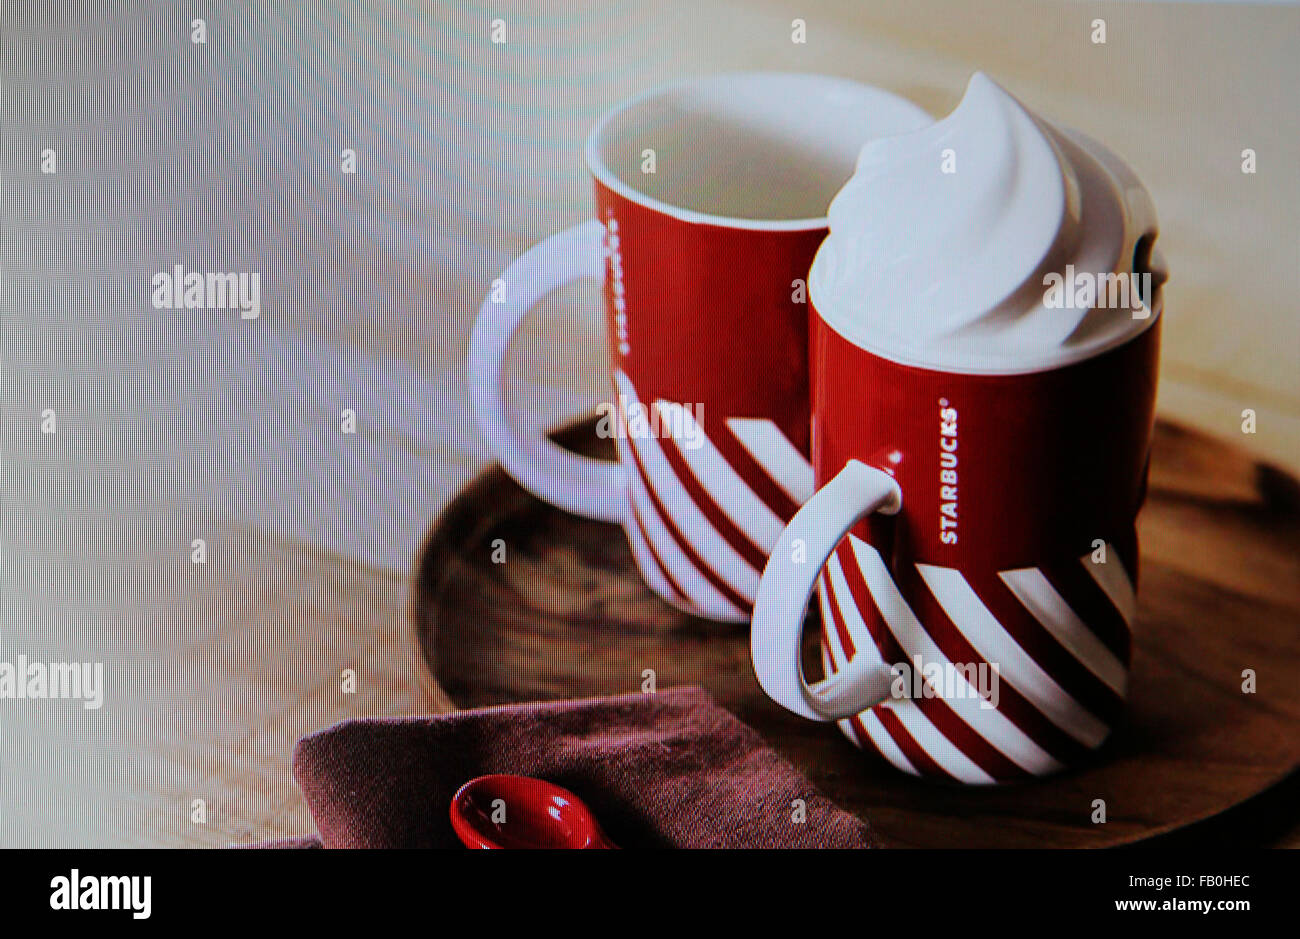 Starbucks - Coffeehouse chain - Stock Image